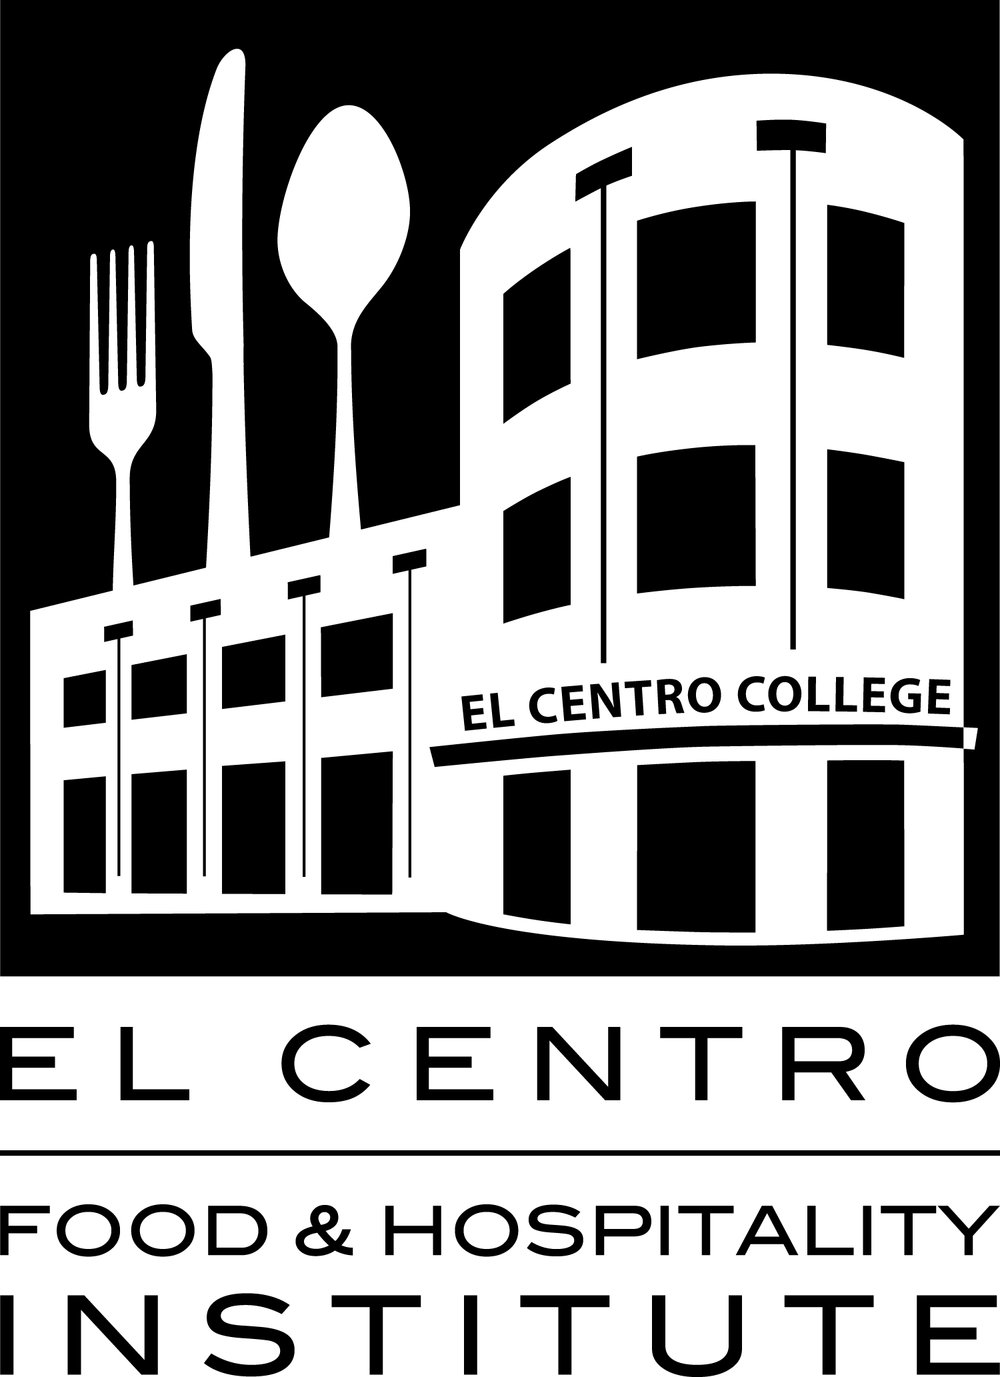 El Centro College Food and Hospitality Institute - The Food and Hospitality Institute, located at the El Centro College Downtown Campus, is the choice if you want a great, hands-on education at a fraction of the cost of for-profit culinary schools. Our in-the-kitchen training with experienced professionals, combined with strong industry connections, will give you the expertise to help you land the job you want — and set you apart from the competition.